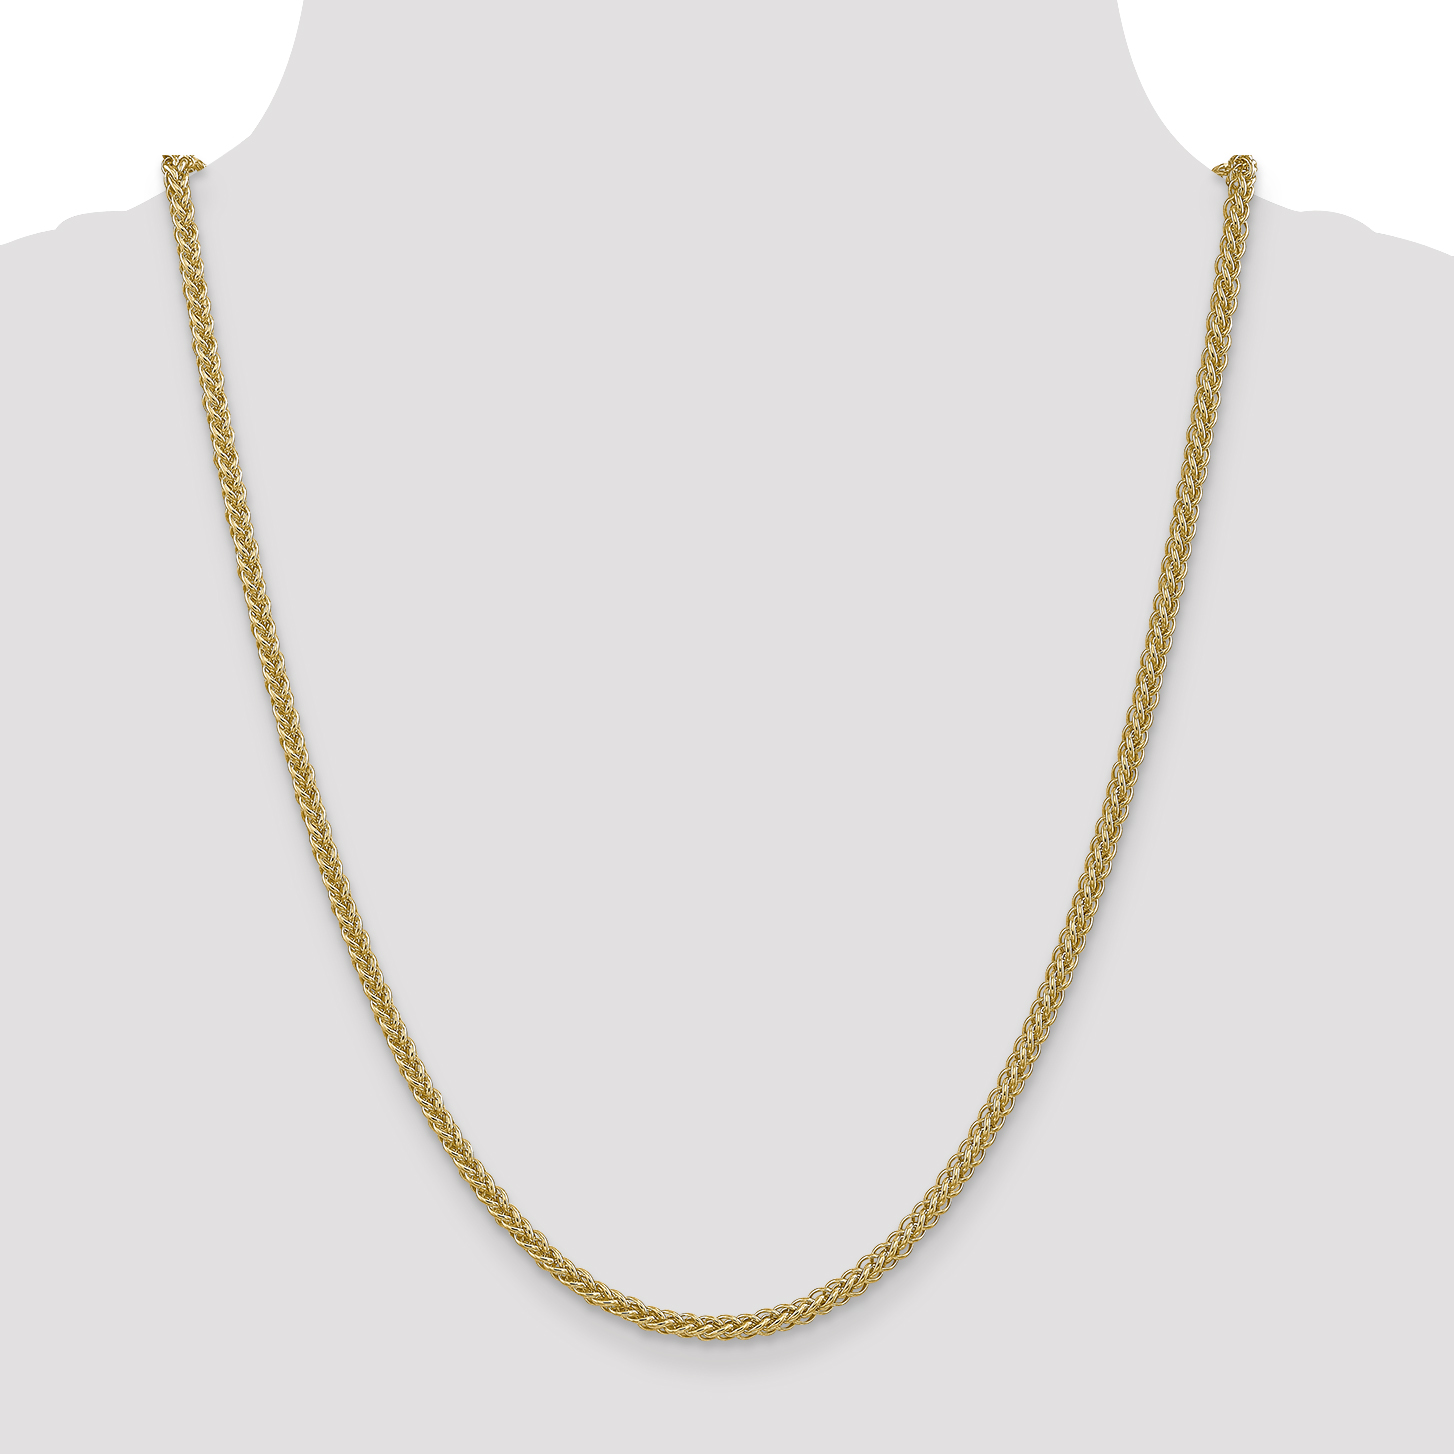 14K Yellow Gold 2.60mm Semi-solid 3-Wire Wheat Chain 18 Inch - image 2 of 5